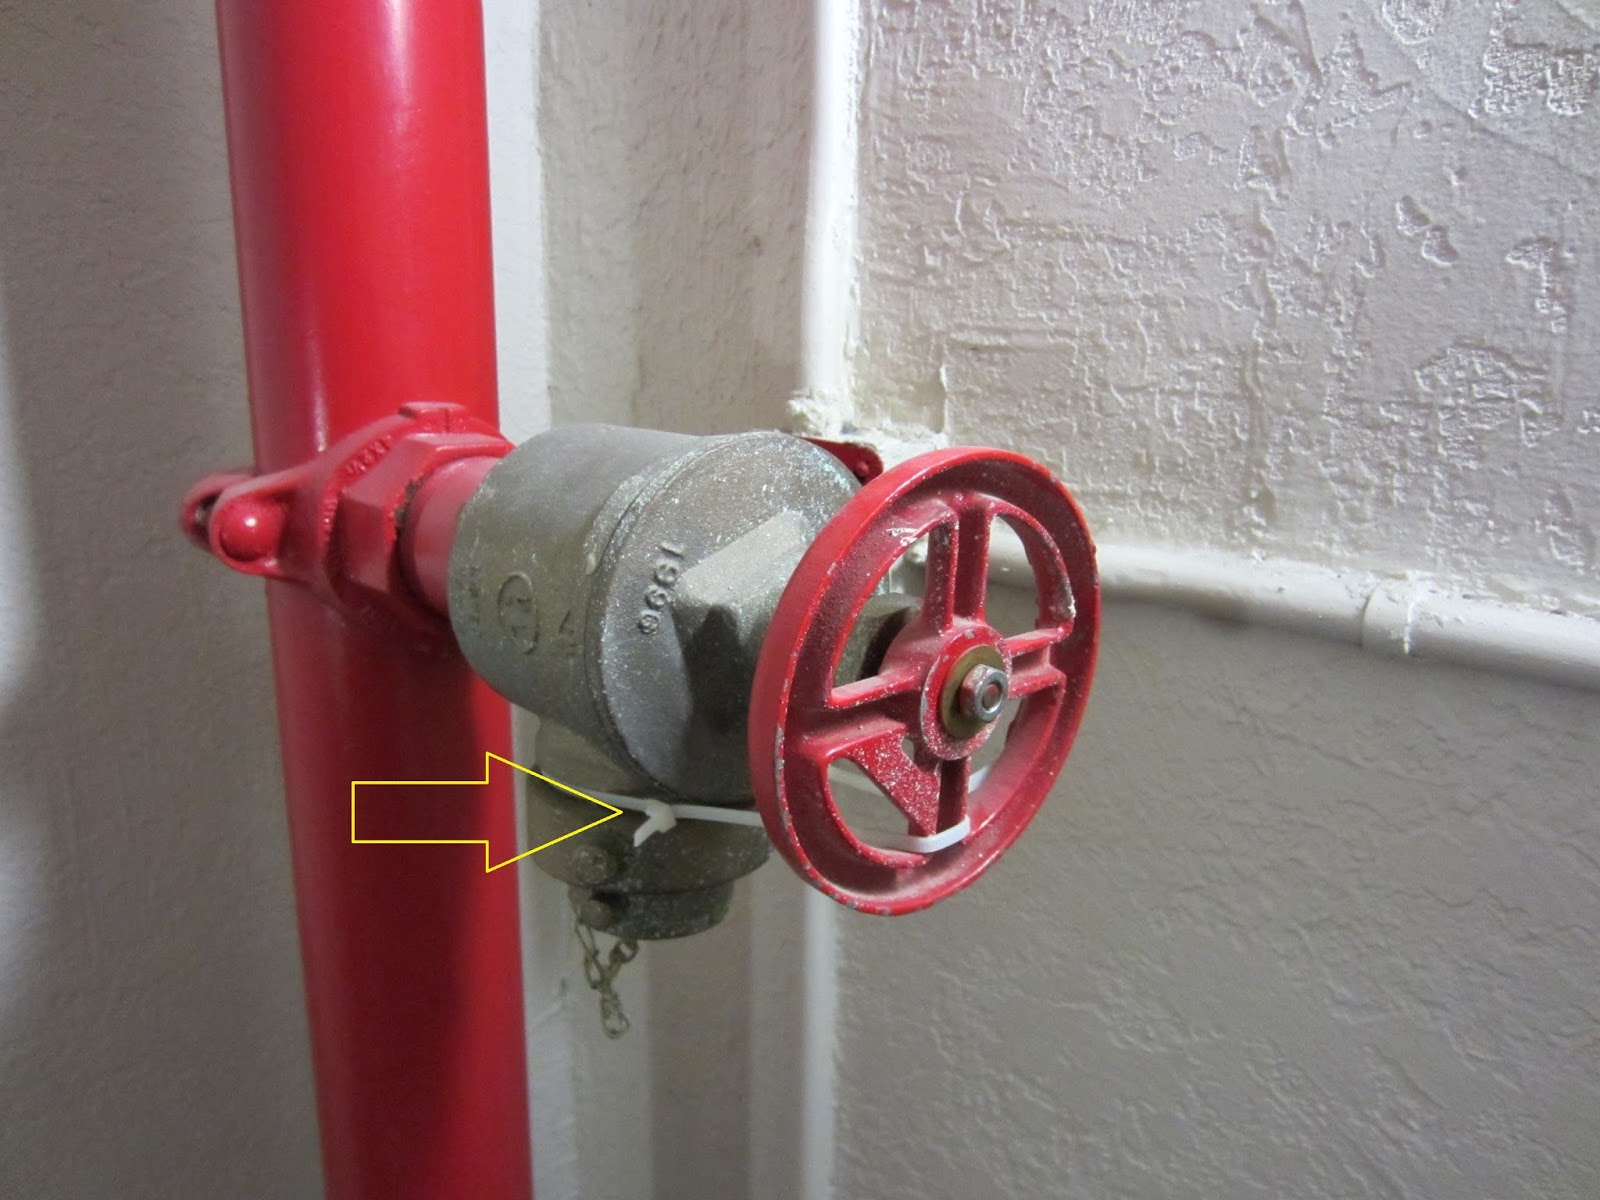 Fire Protection Deficiencies: On Standpipes